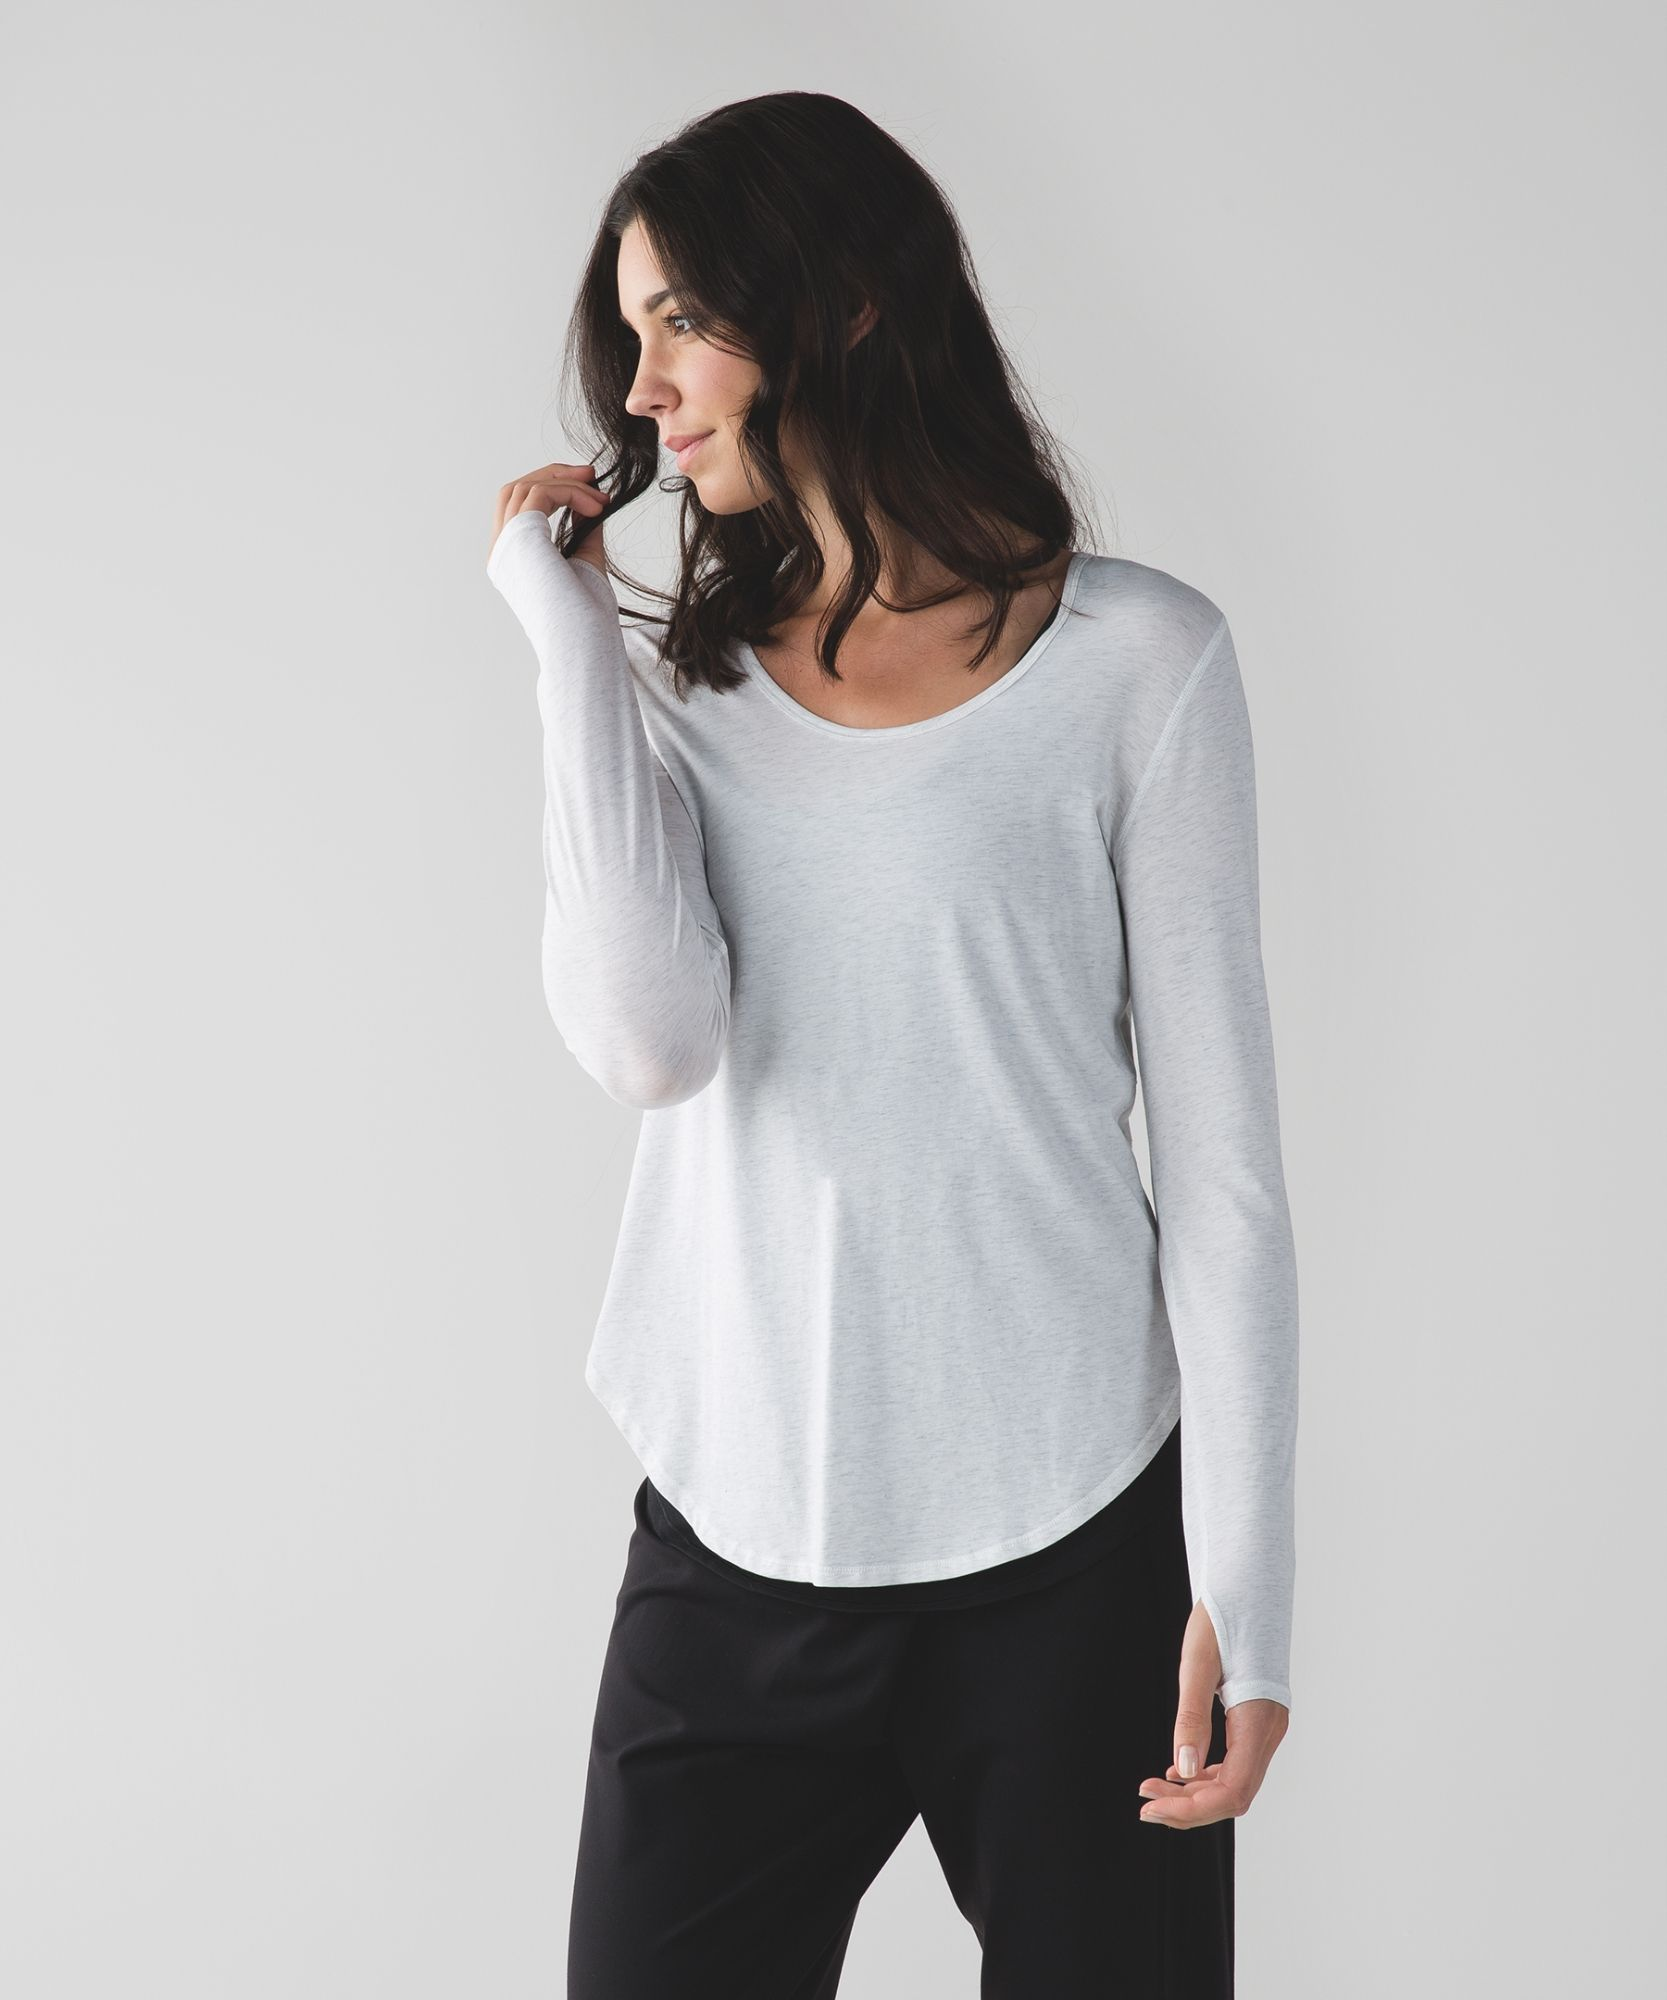 Layer this loosefitting long sleeve over your practice